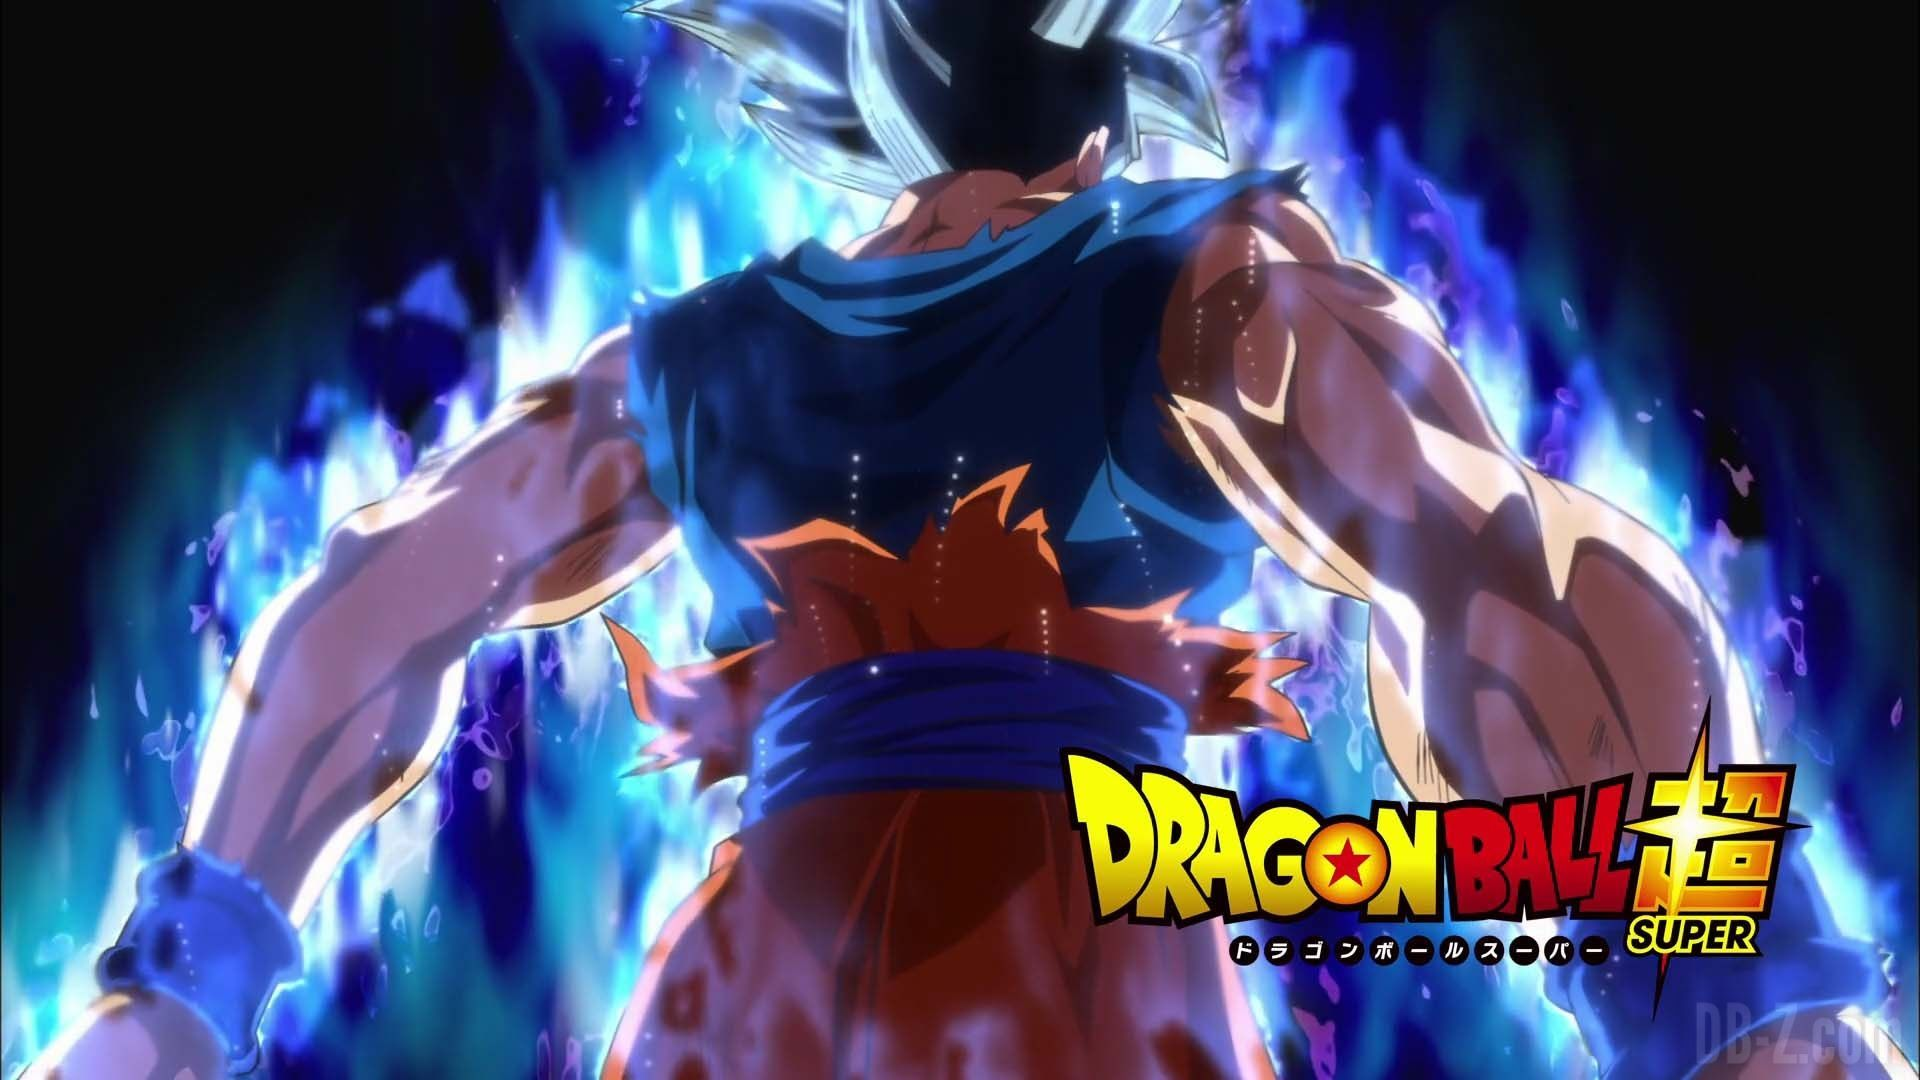 Dragon Ball Super Episodio 97 Comienza El Torneo Del Poder